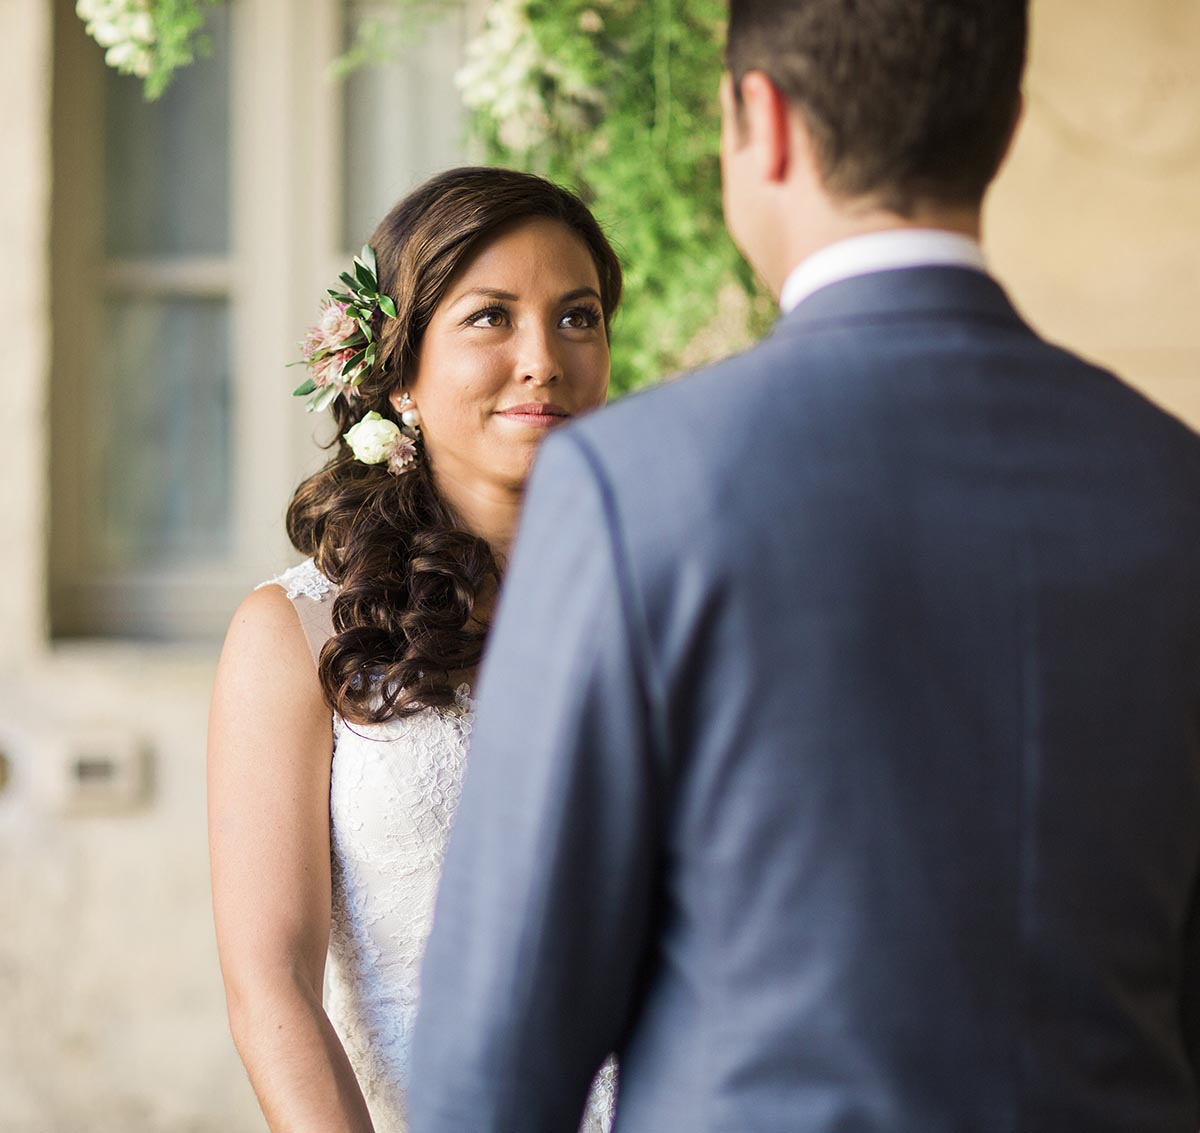 bride-overcome-with-emotion-at-her-tuscany-wedding-ceremony